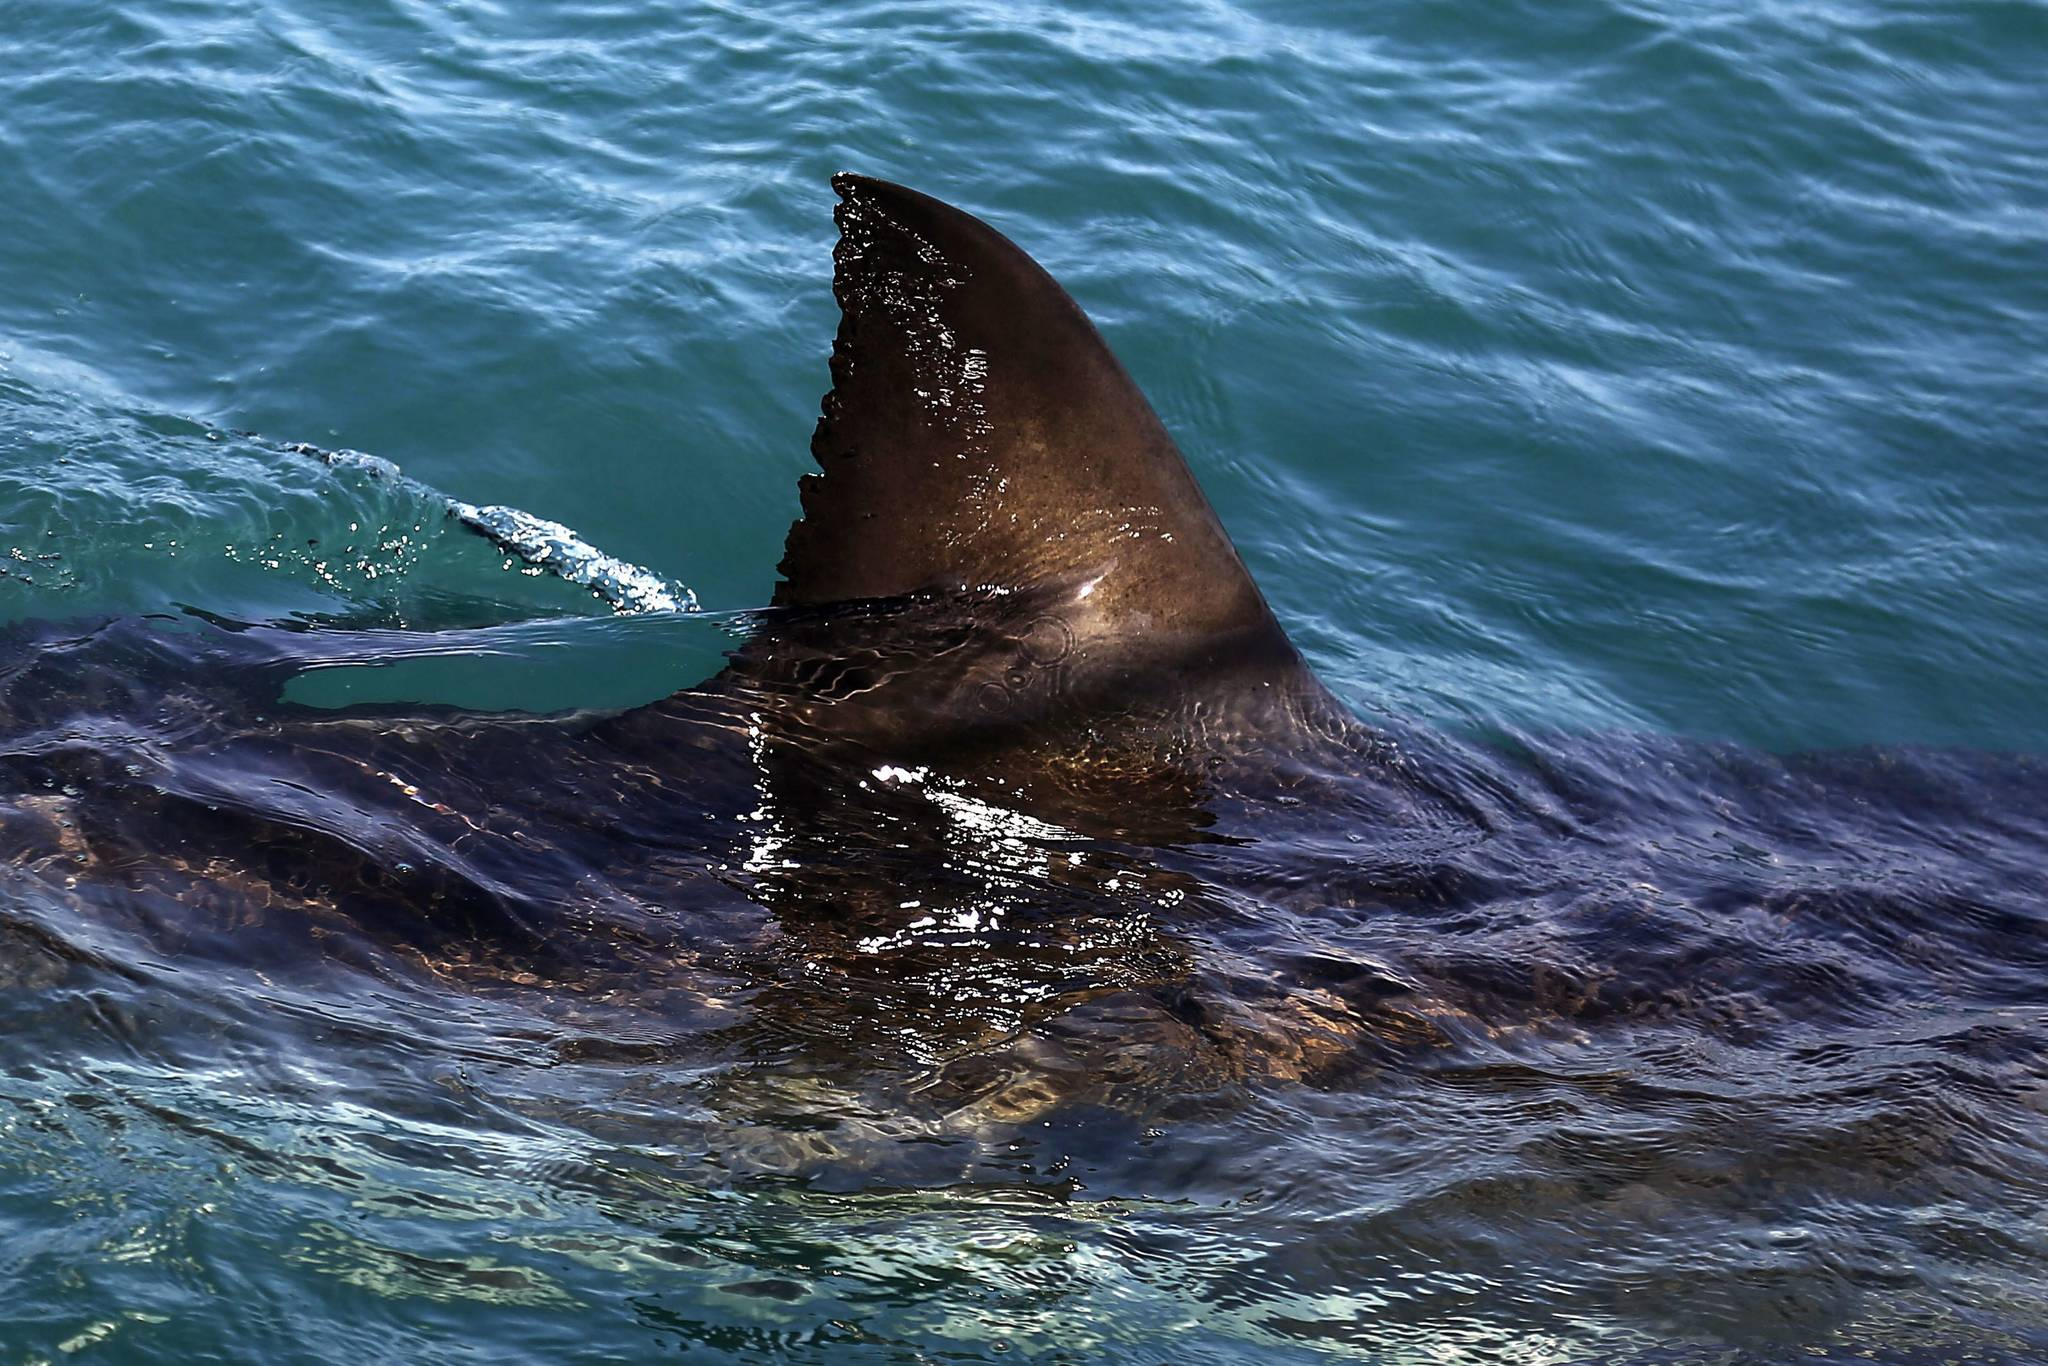 FILE - In this Thursday, Aug. 11, 2016, file photo, the fin of a great white shark is seen swimming a past research boat in the waters off Gansbaai, South Africa. (AP Photo/Schalk van Zuydam, File)